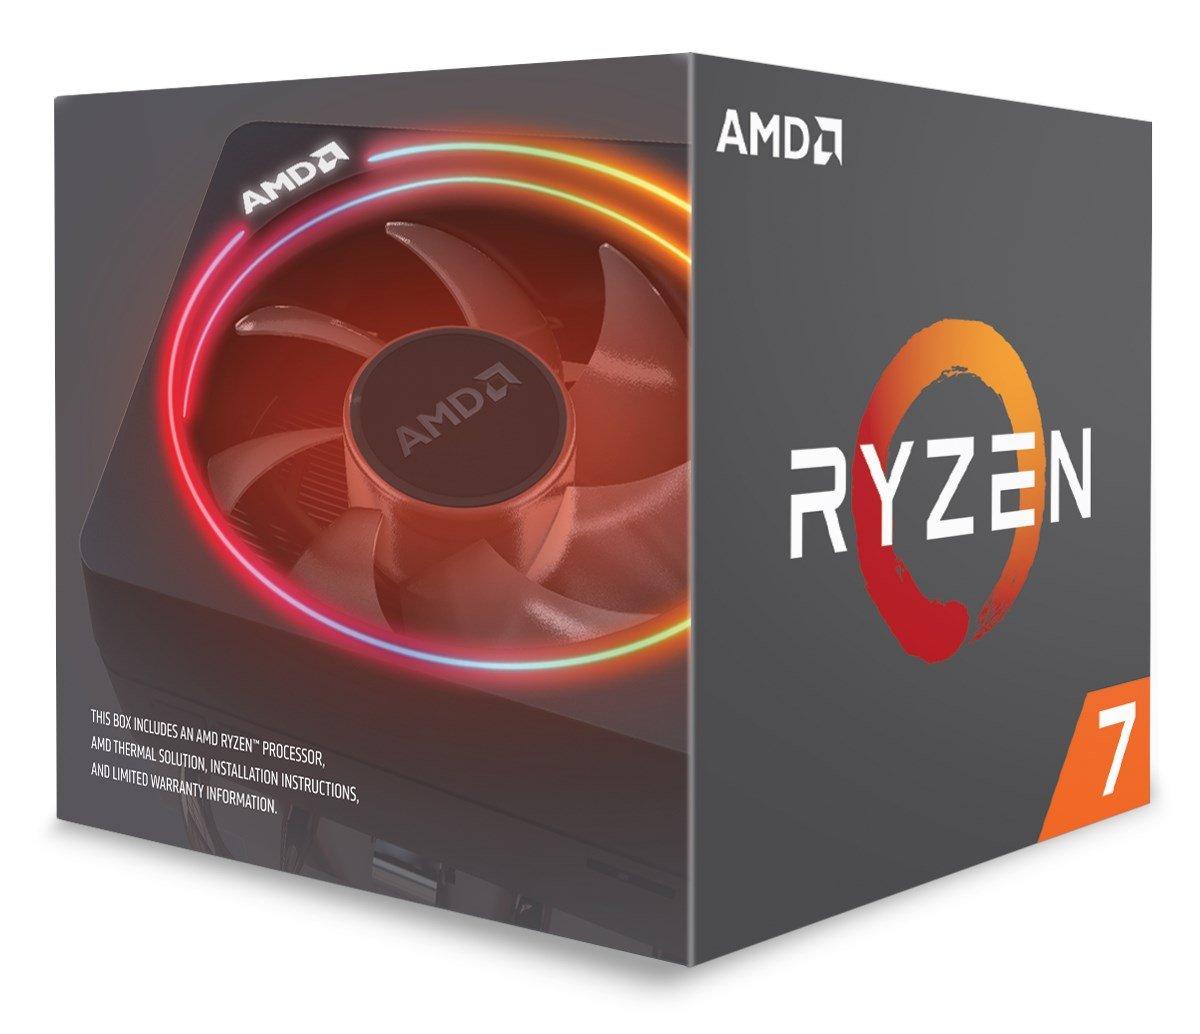 Ccl Extreme Ryzen 7x Amd Motherboard Bundle Mbb Ryzen3 Wiring Instructions Interactive Brokers Key Features